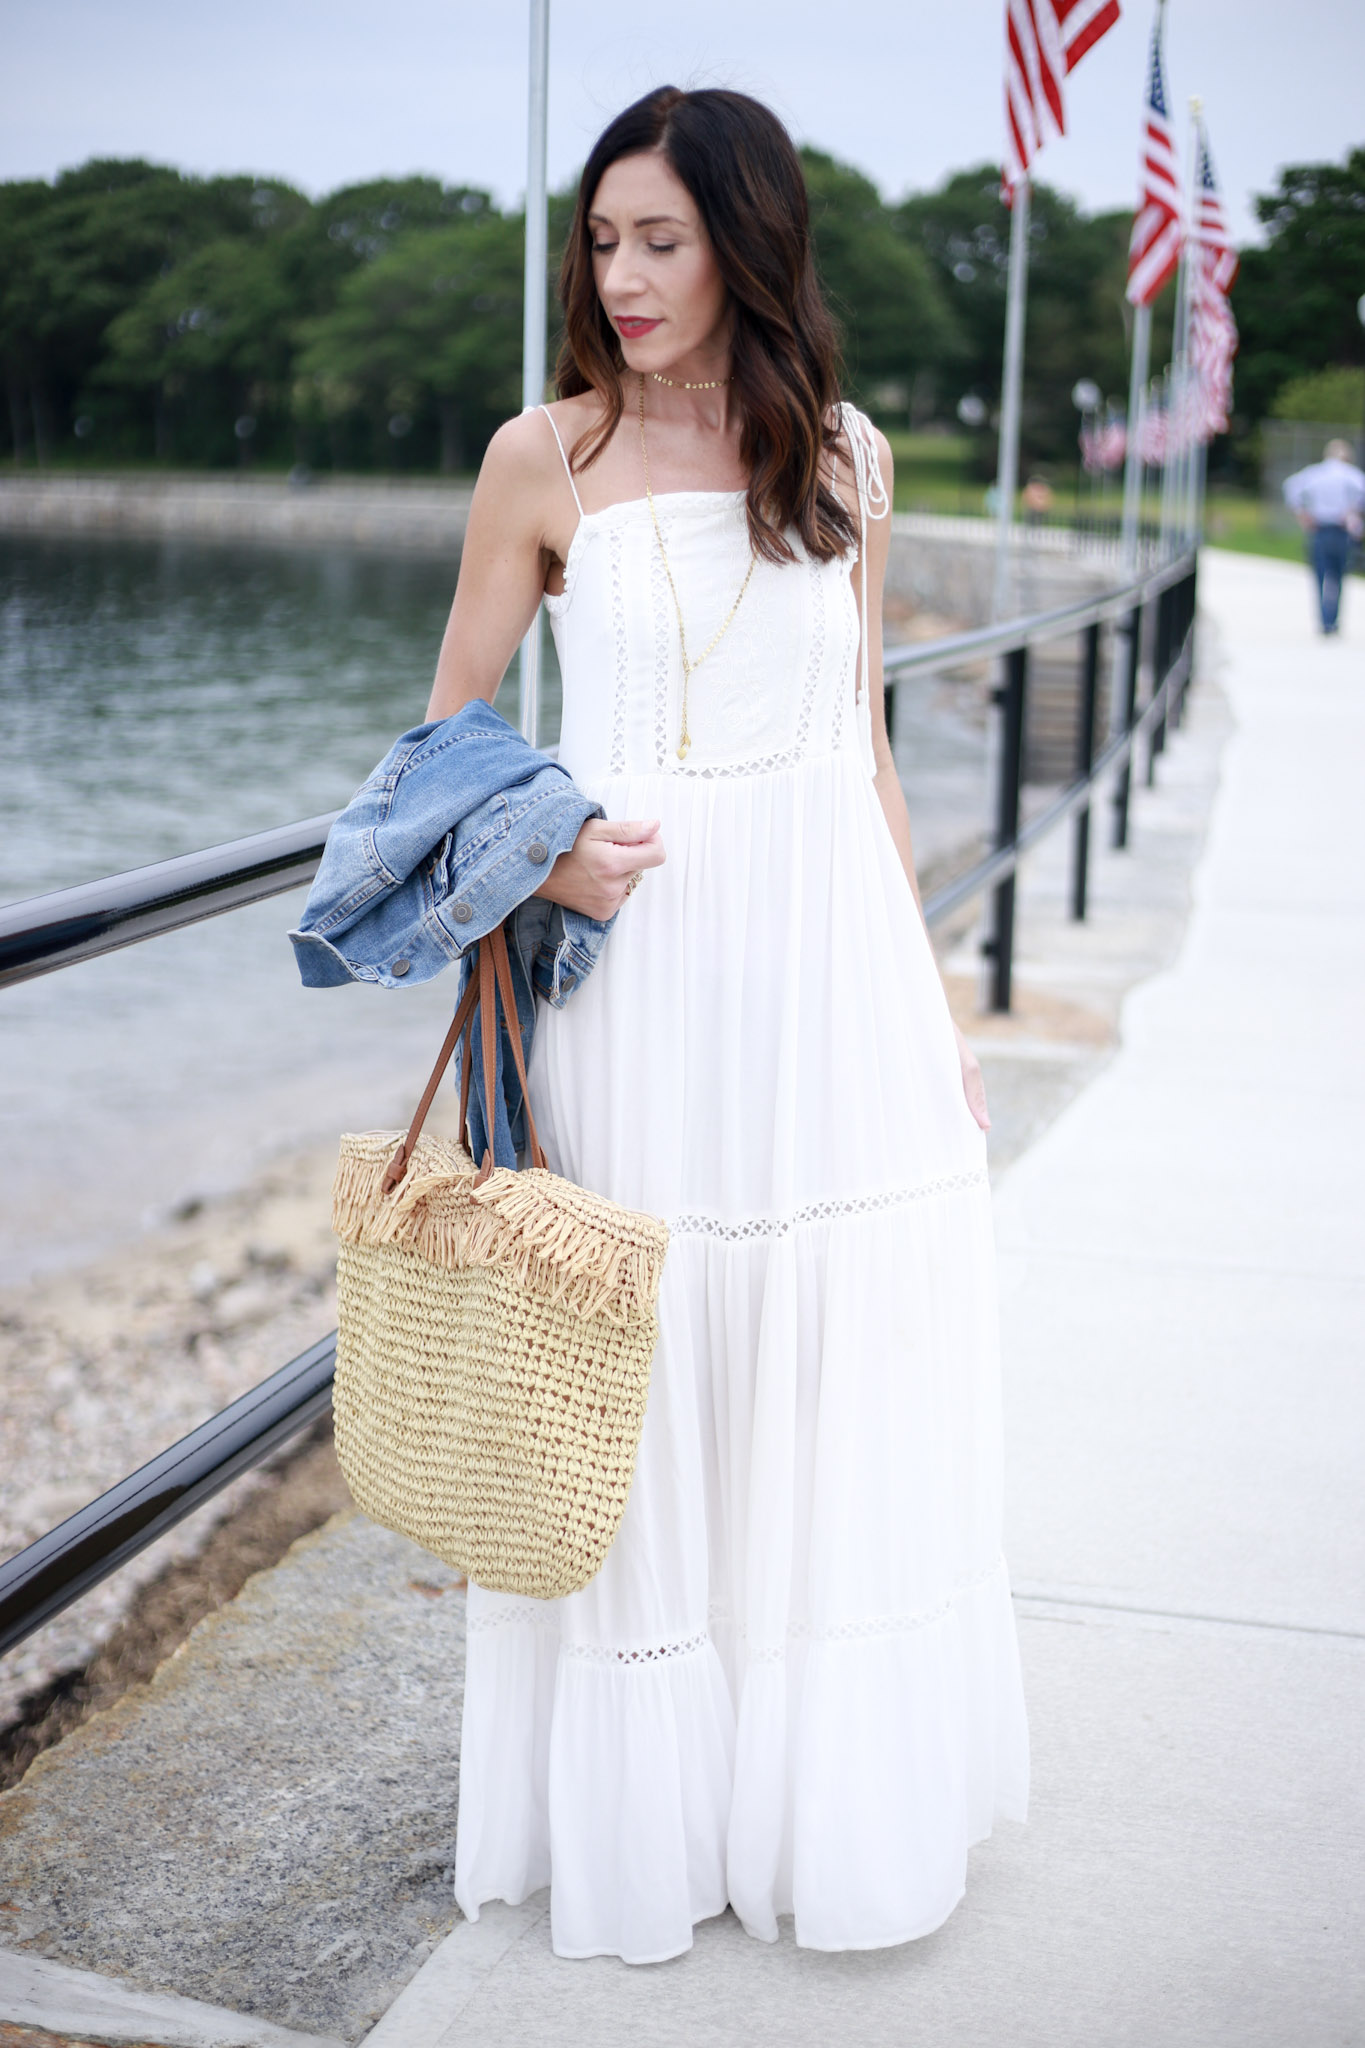 easy fourth of july looks. Simple white maxi outfit